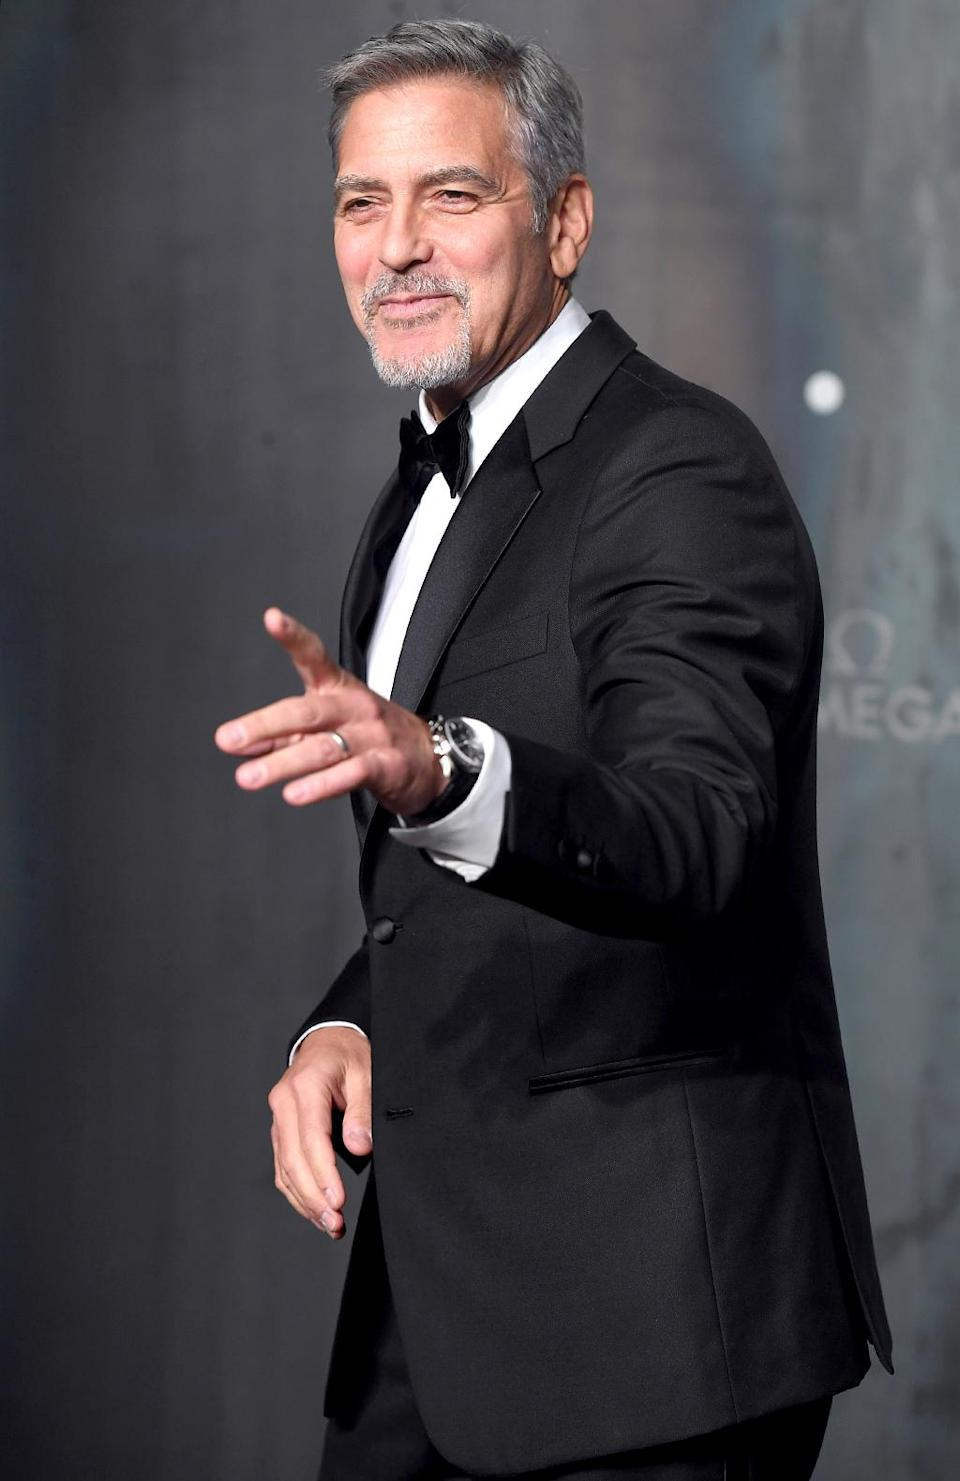 """<p>The dashing actor had some fun Wednesday at watch brand Omega's Lost in Space event, celebrating 60 years of its Speedmaster model, in London. Then again, <a rel=""""nofollow"""" href=""""https://www.yahoo.com/celebrity/george-clooney-rides-shotgun-burt-reynolds-sort-125740775.html"""" data-ylk=""""slk:when is that guy not having fun;outcm:mb_qualified_link;_E:mb_qualified_link;ct:story;"""" class=""""link rapid-noclick-resp yahoo-link"""">when is that guy <i>not</i> having fun</a>? (Photo: Karwai Tang/WireImage) </p>"""